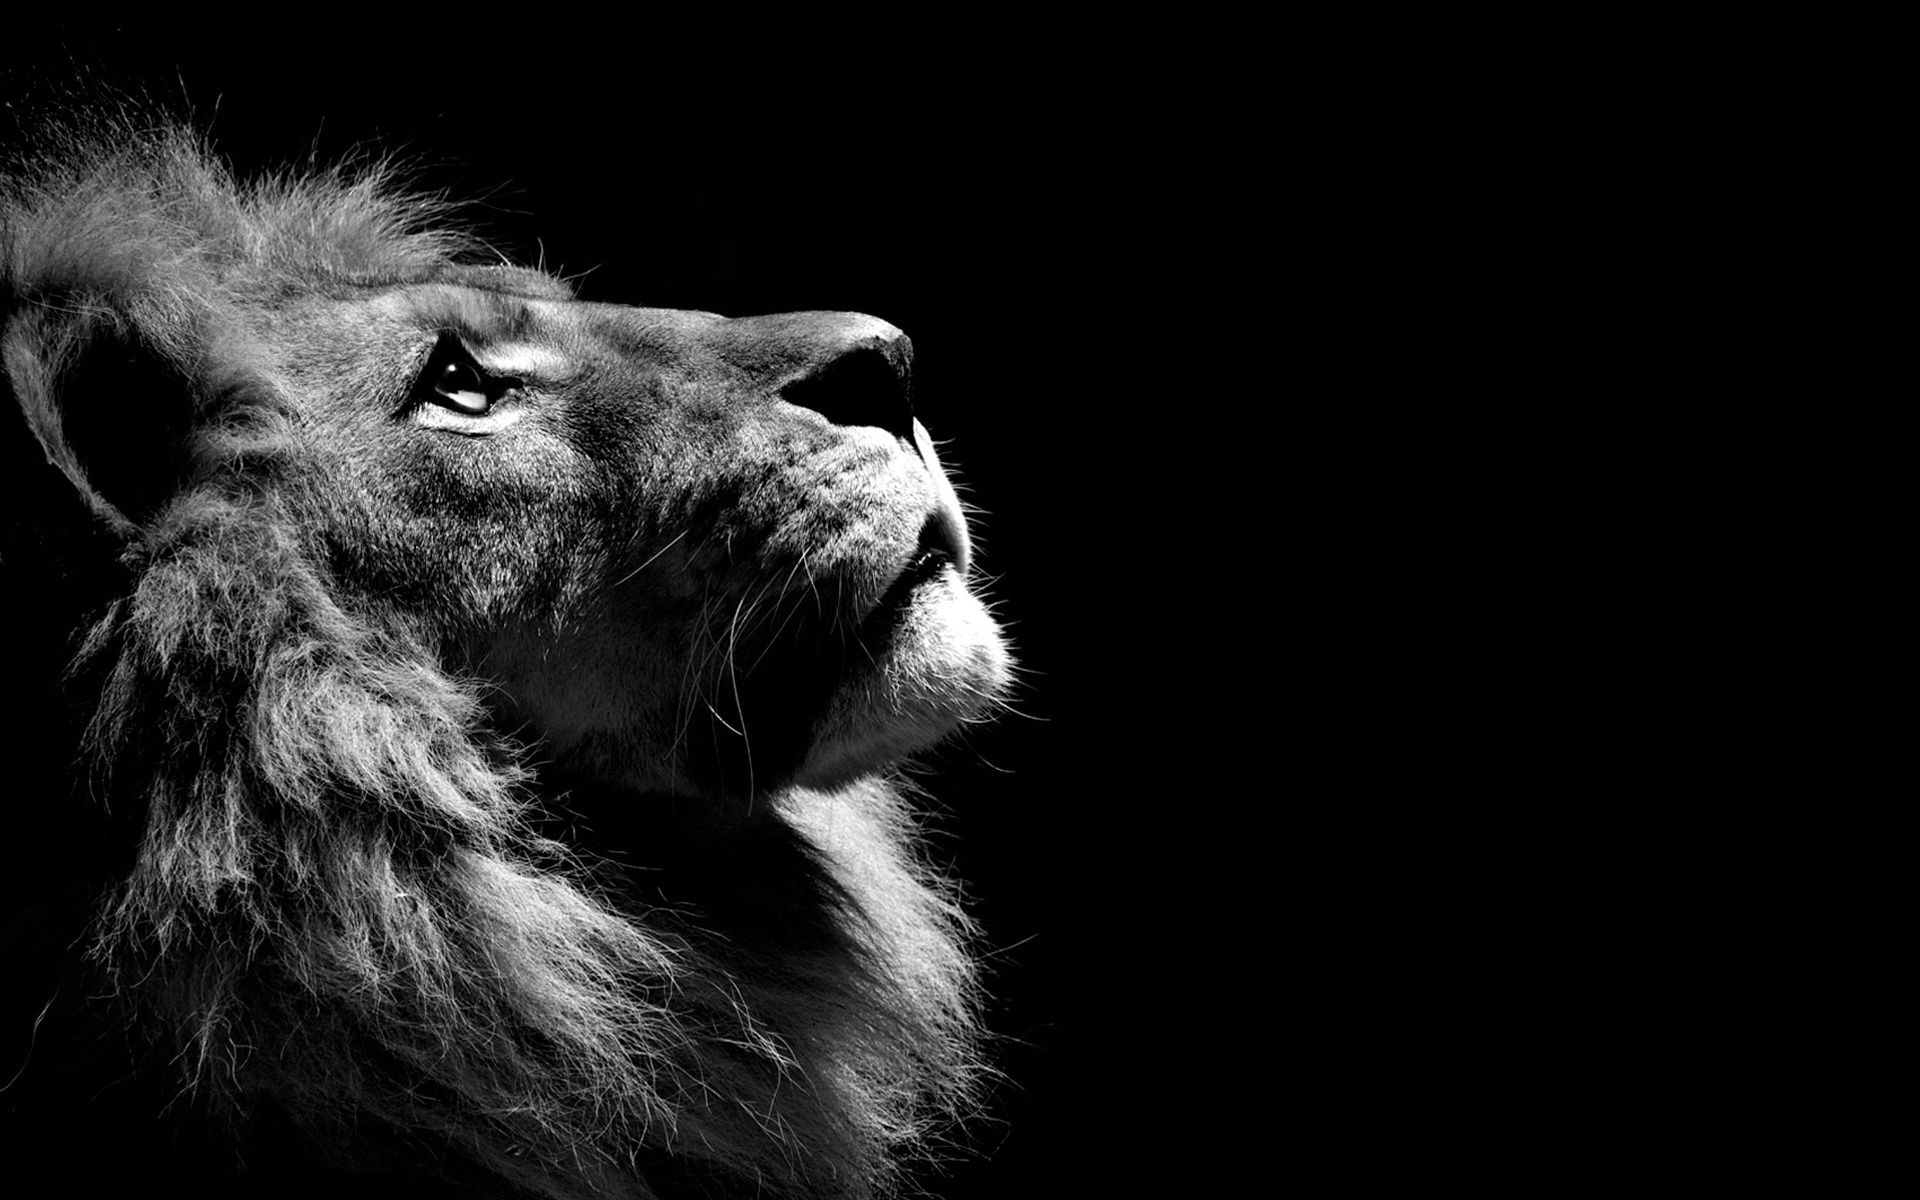 Lion Profile In Black And White HD Wallpaper